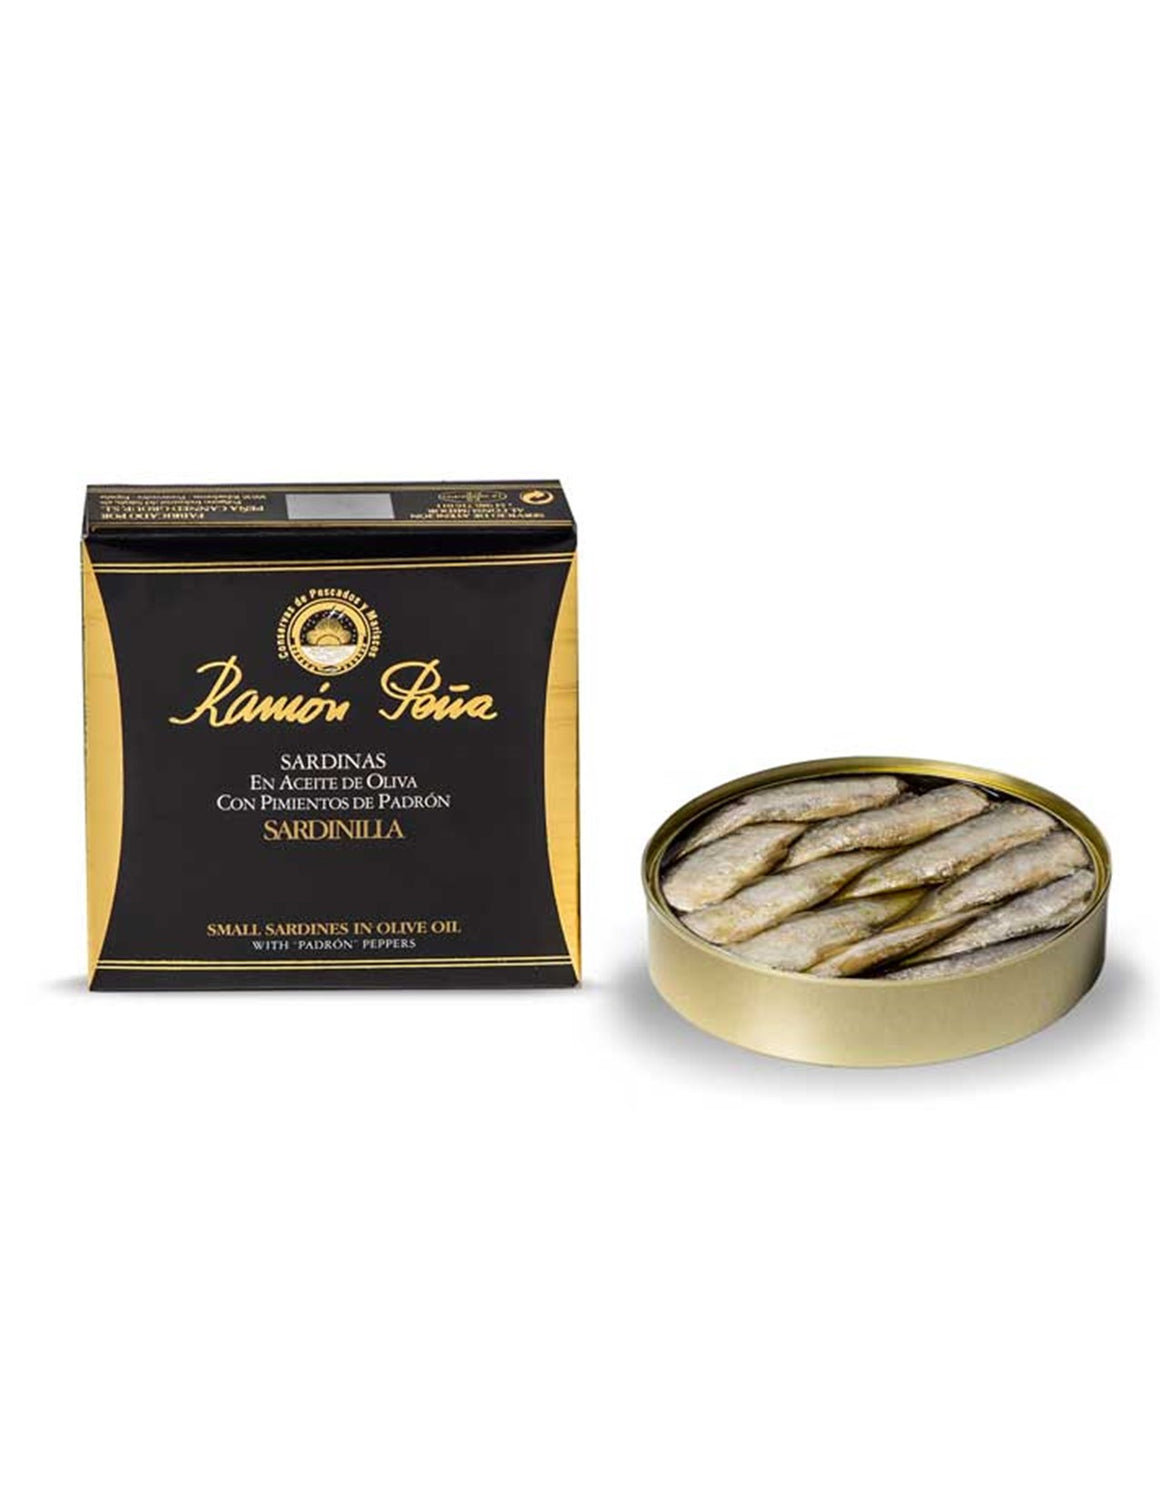 Ramon Pena - Small Sardines in Olive Oil with Padron Peppers